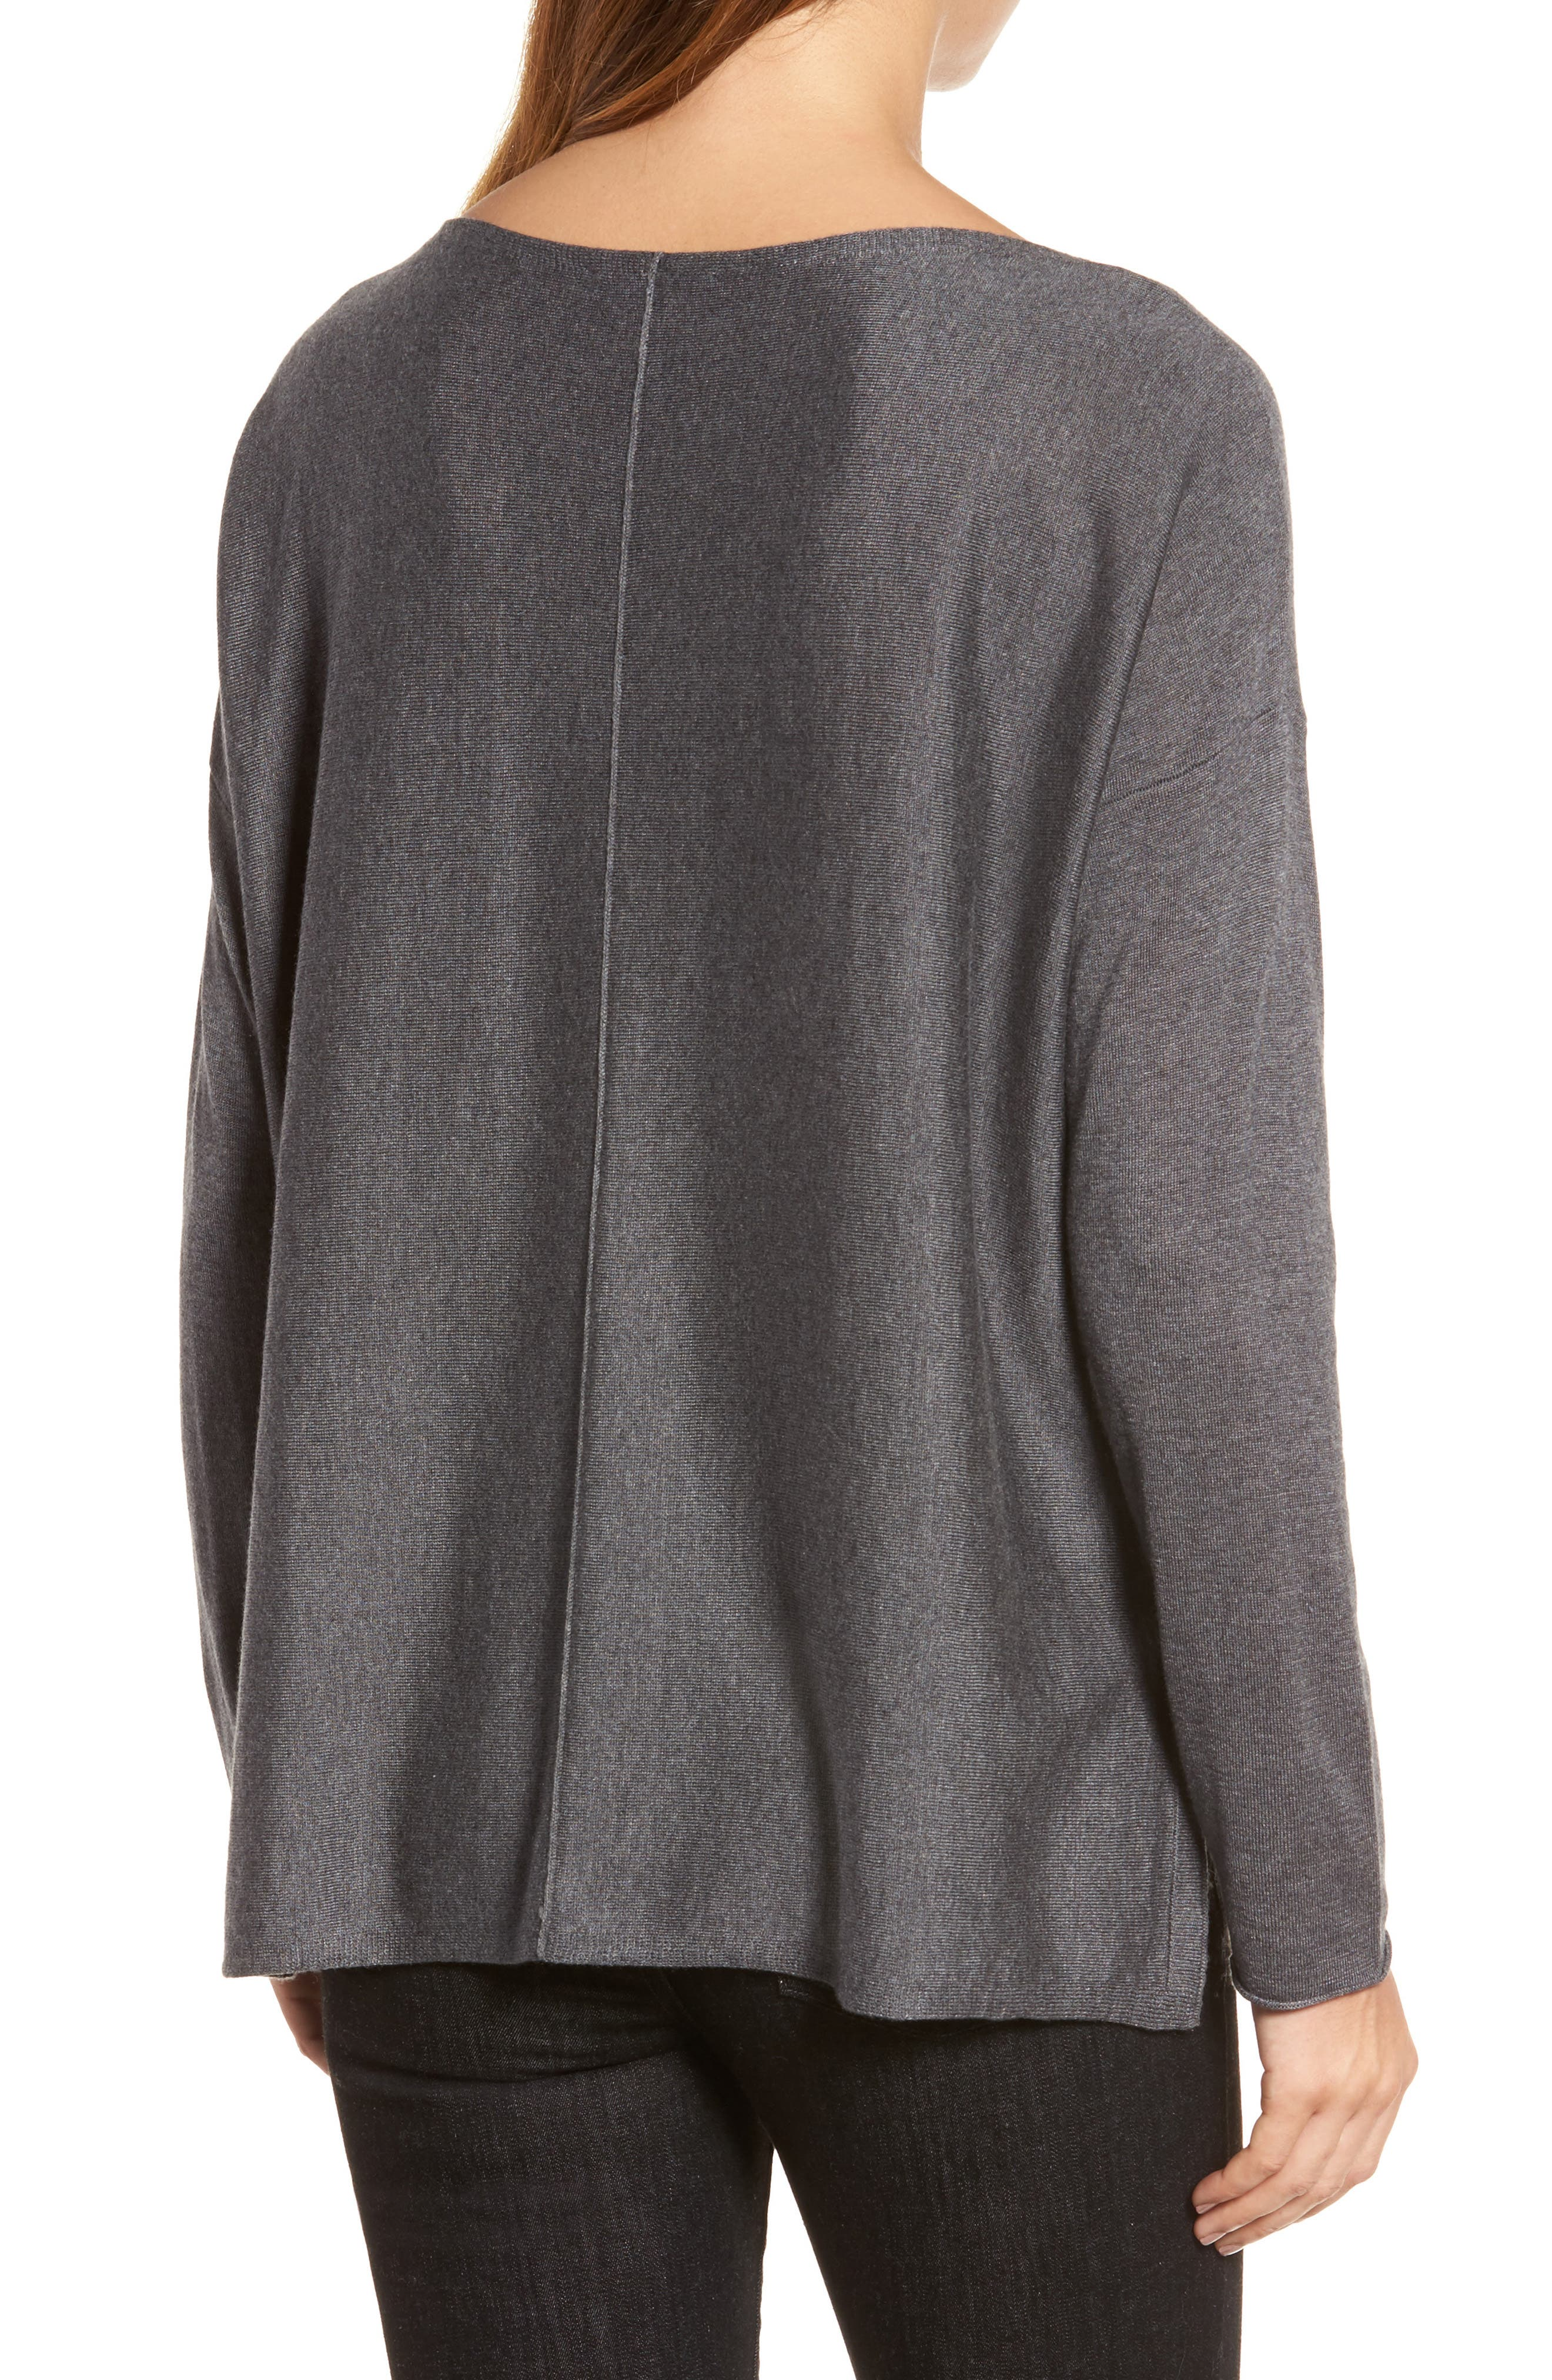 Tencel<sup>®</sup> Lyocell Blend High/Low Sweater,                             Alternate thumbnail 8, color,